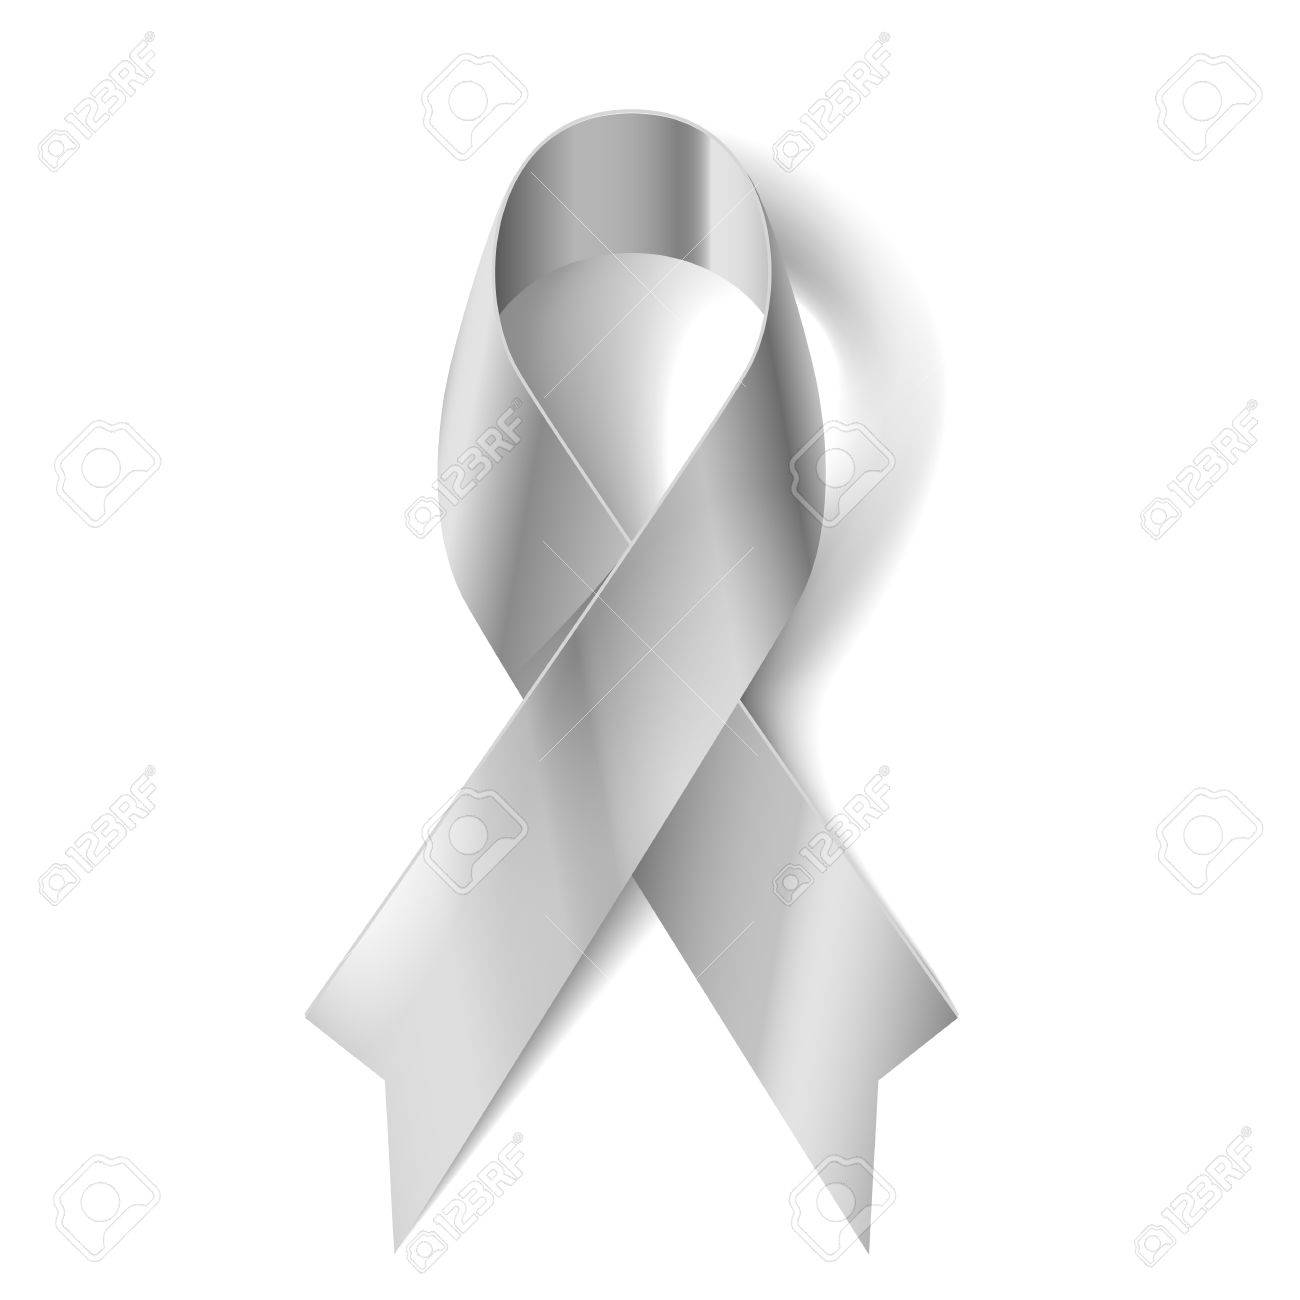 Ovarian cancer ribbon stock photos pictures royalty free silver awareness ribbon as symbol of parkinson disease ovarian cancer brain disorders and disabilities biocorpaavc